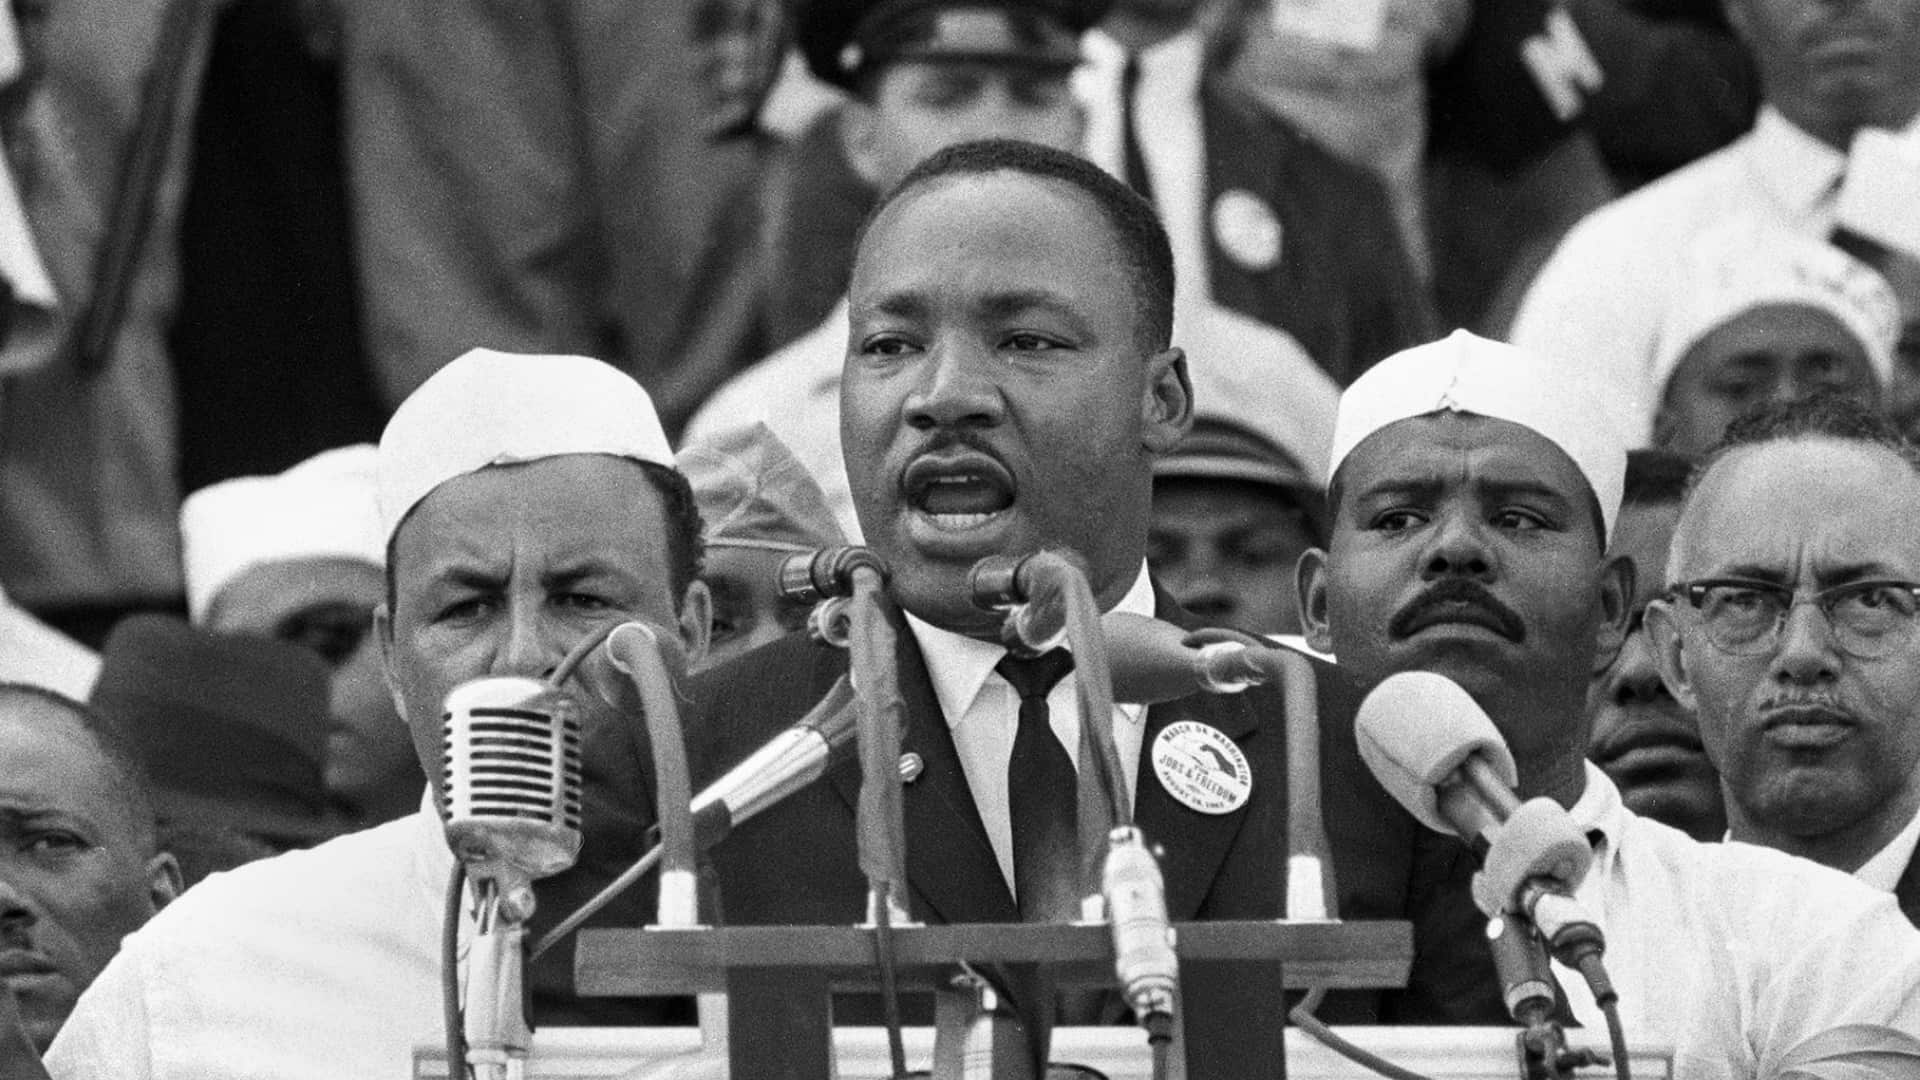 What We Can Learn From Martin Luther King Jr About Service